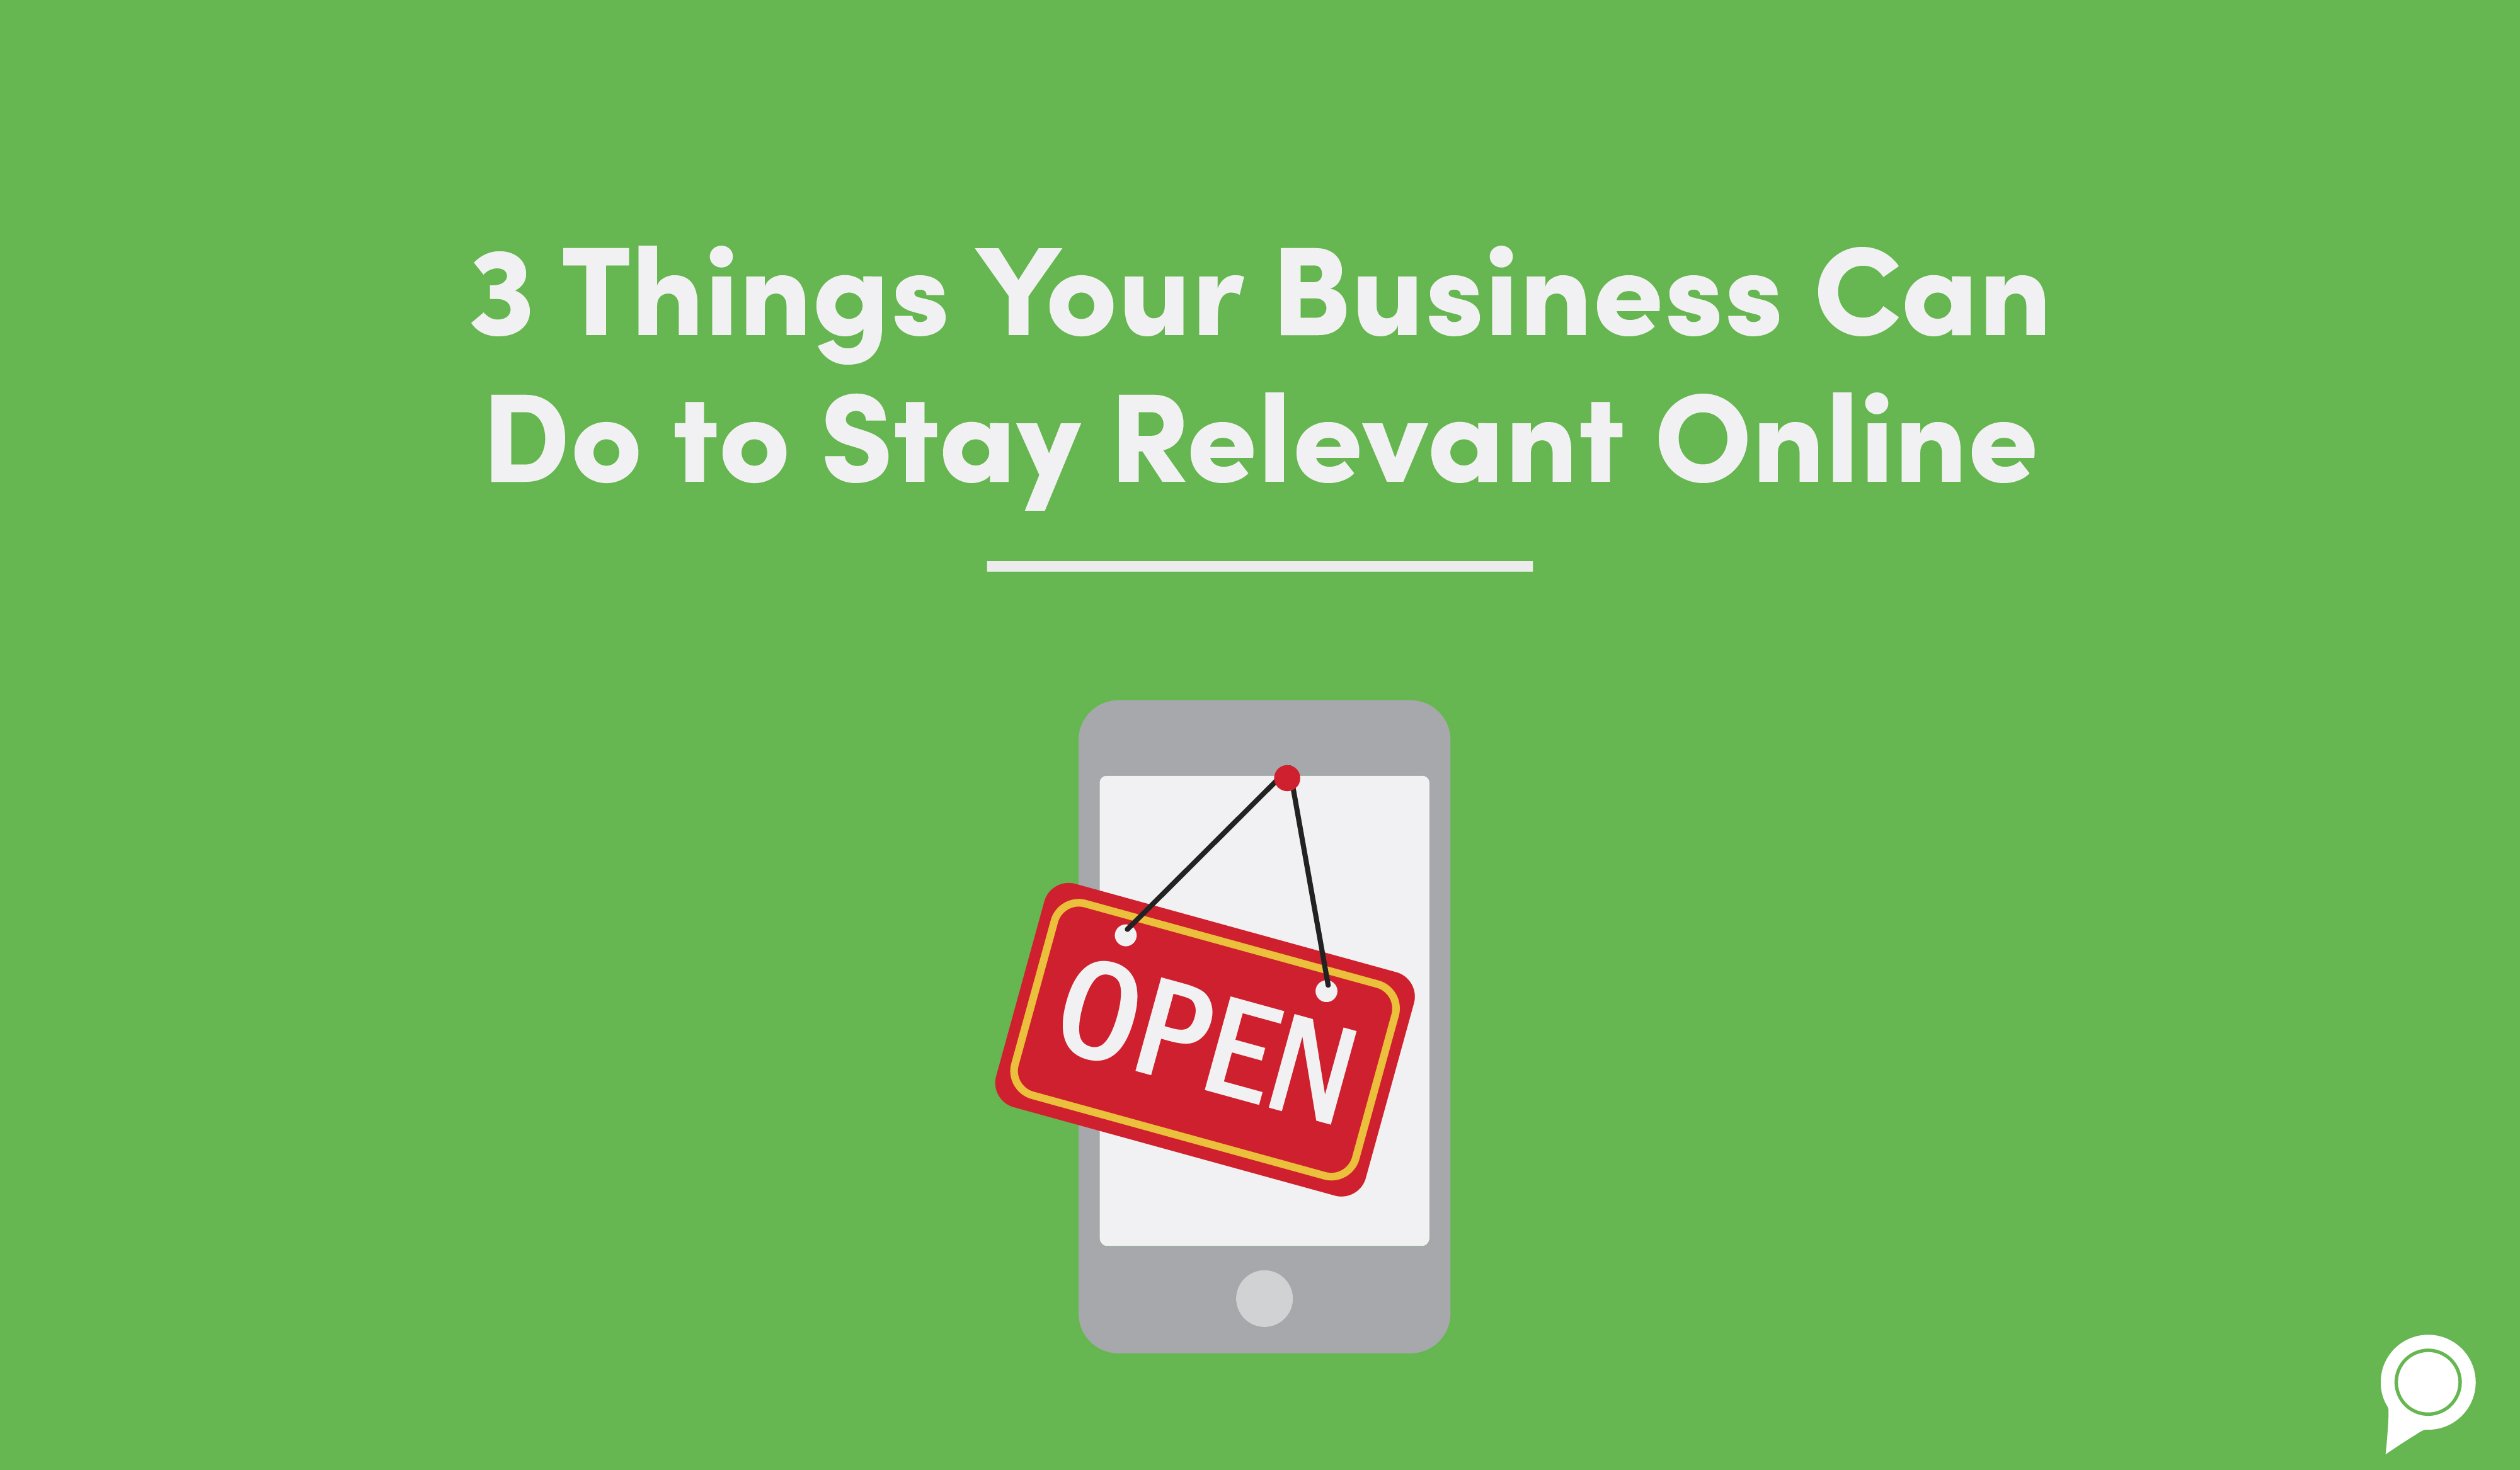 3 Things Your Business Can Do to Stay Relevant Online [Infographic]